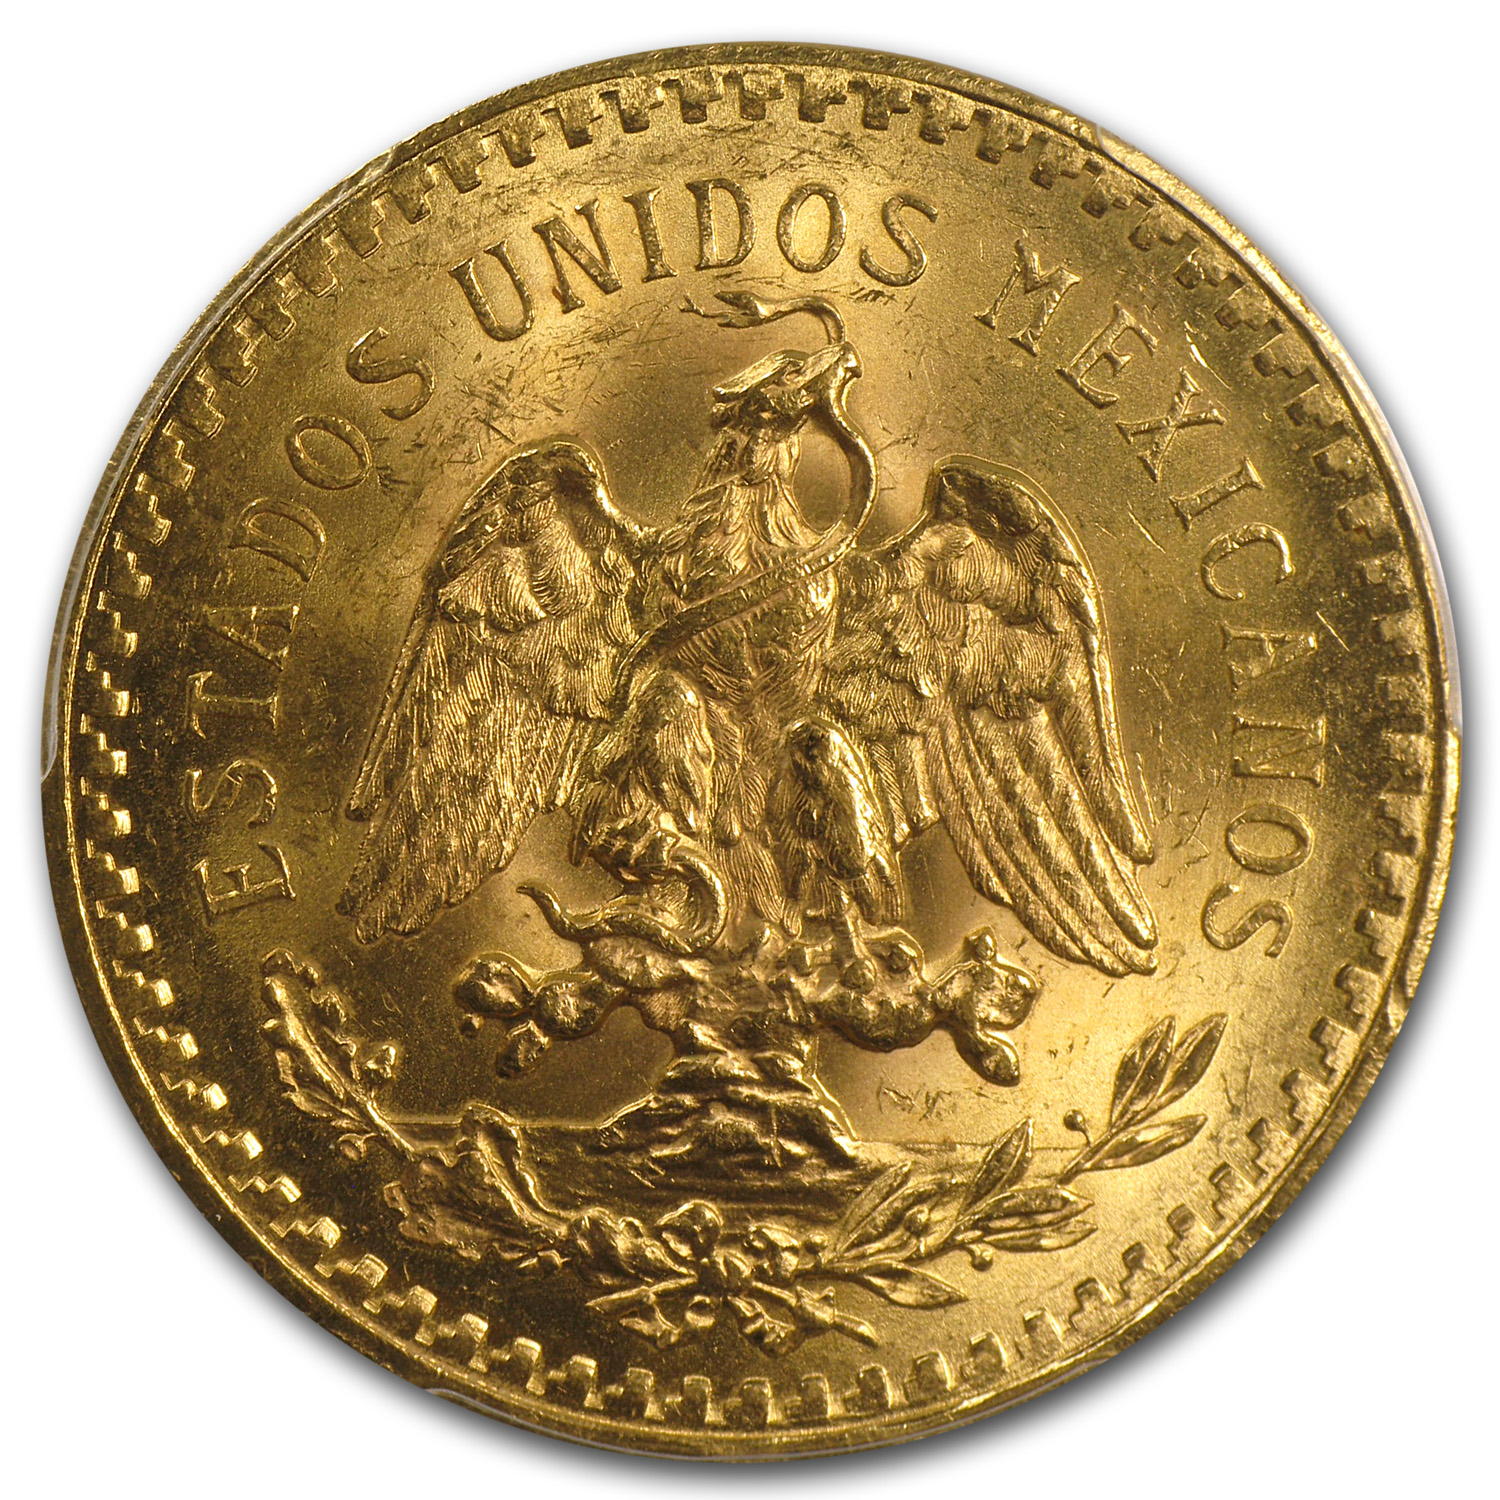 Mexico 1926 50 Pesos Gold Coin - MS-63 PCGS